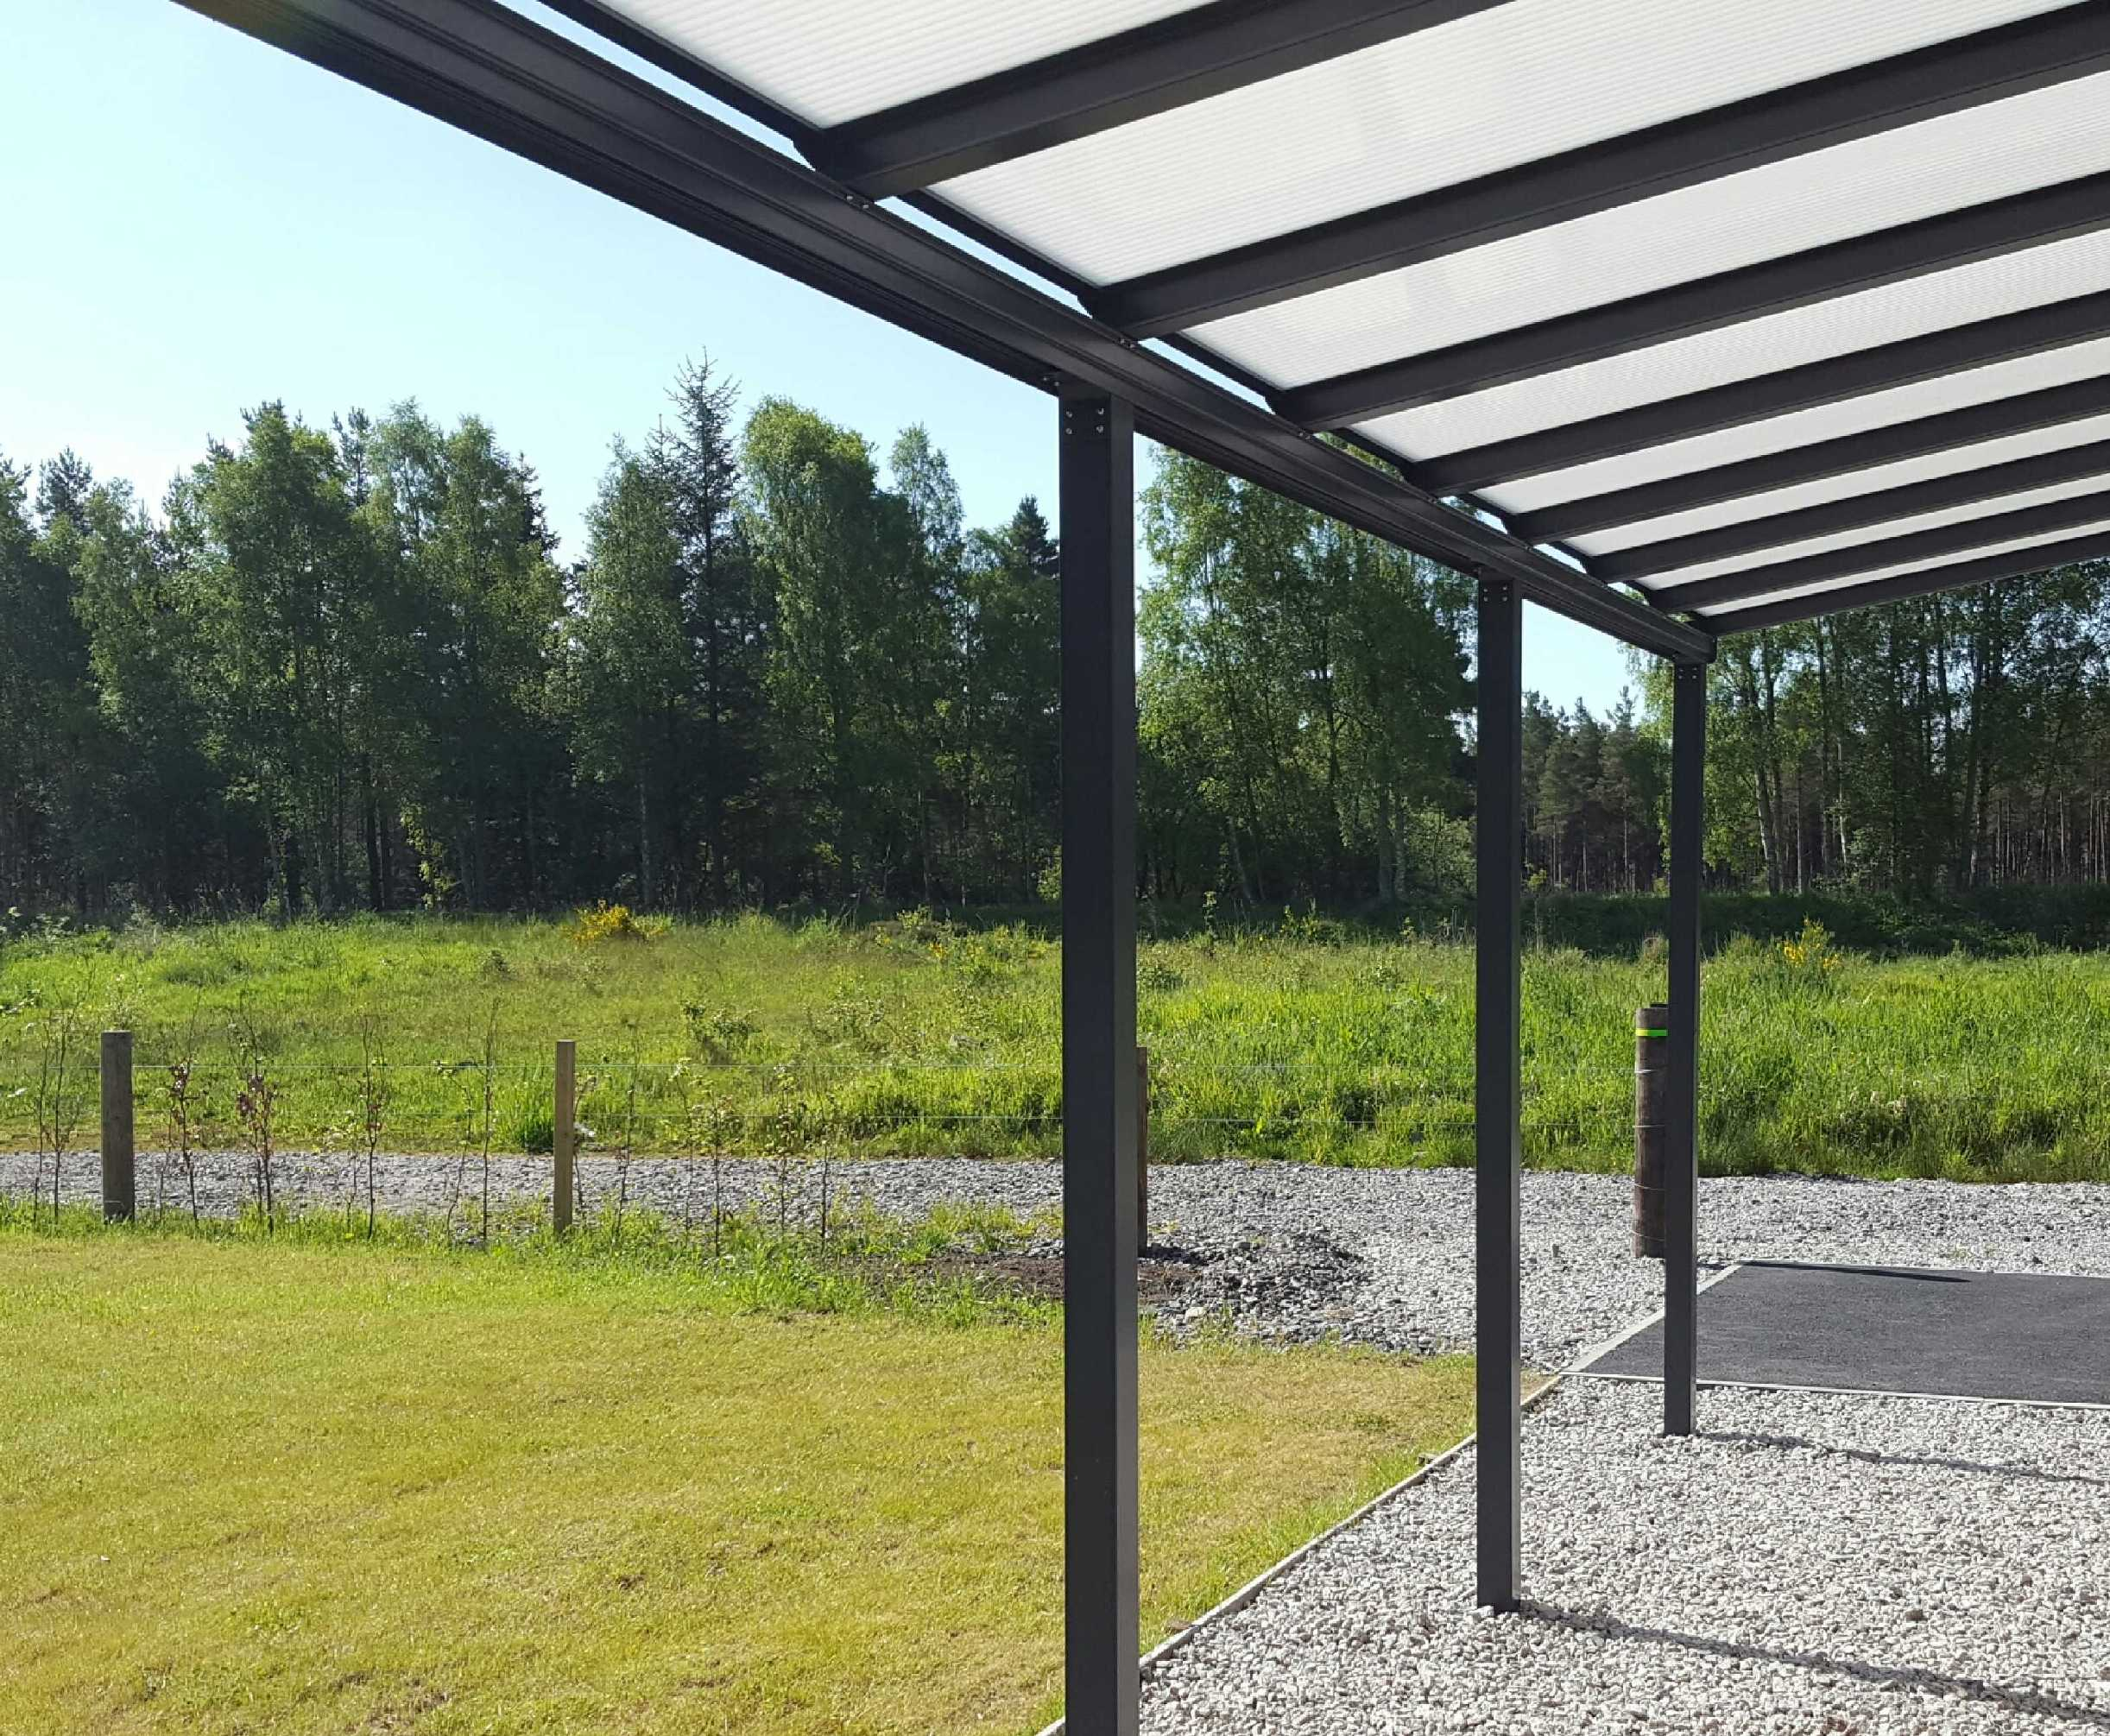 Omega Smart Lean-To Canopy, Anthracite Grey, 6mm Glass Clear Plate Polycarbonate Glazing - 7.4m (W) x 4.0m (P), (4) Supporting Posts